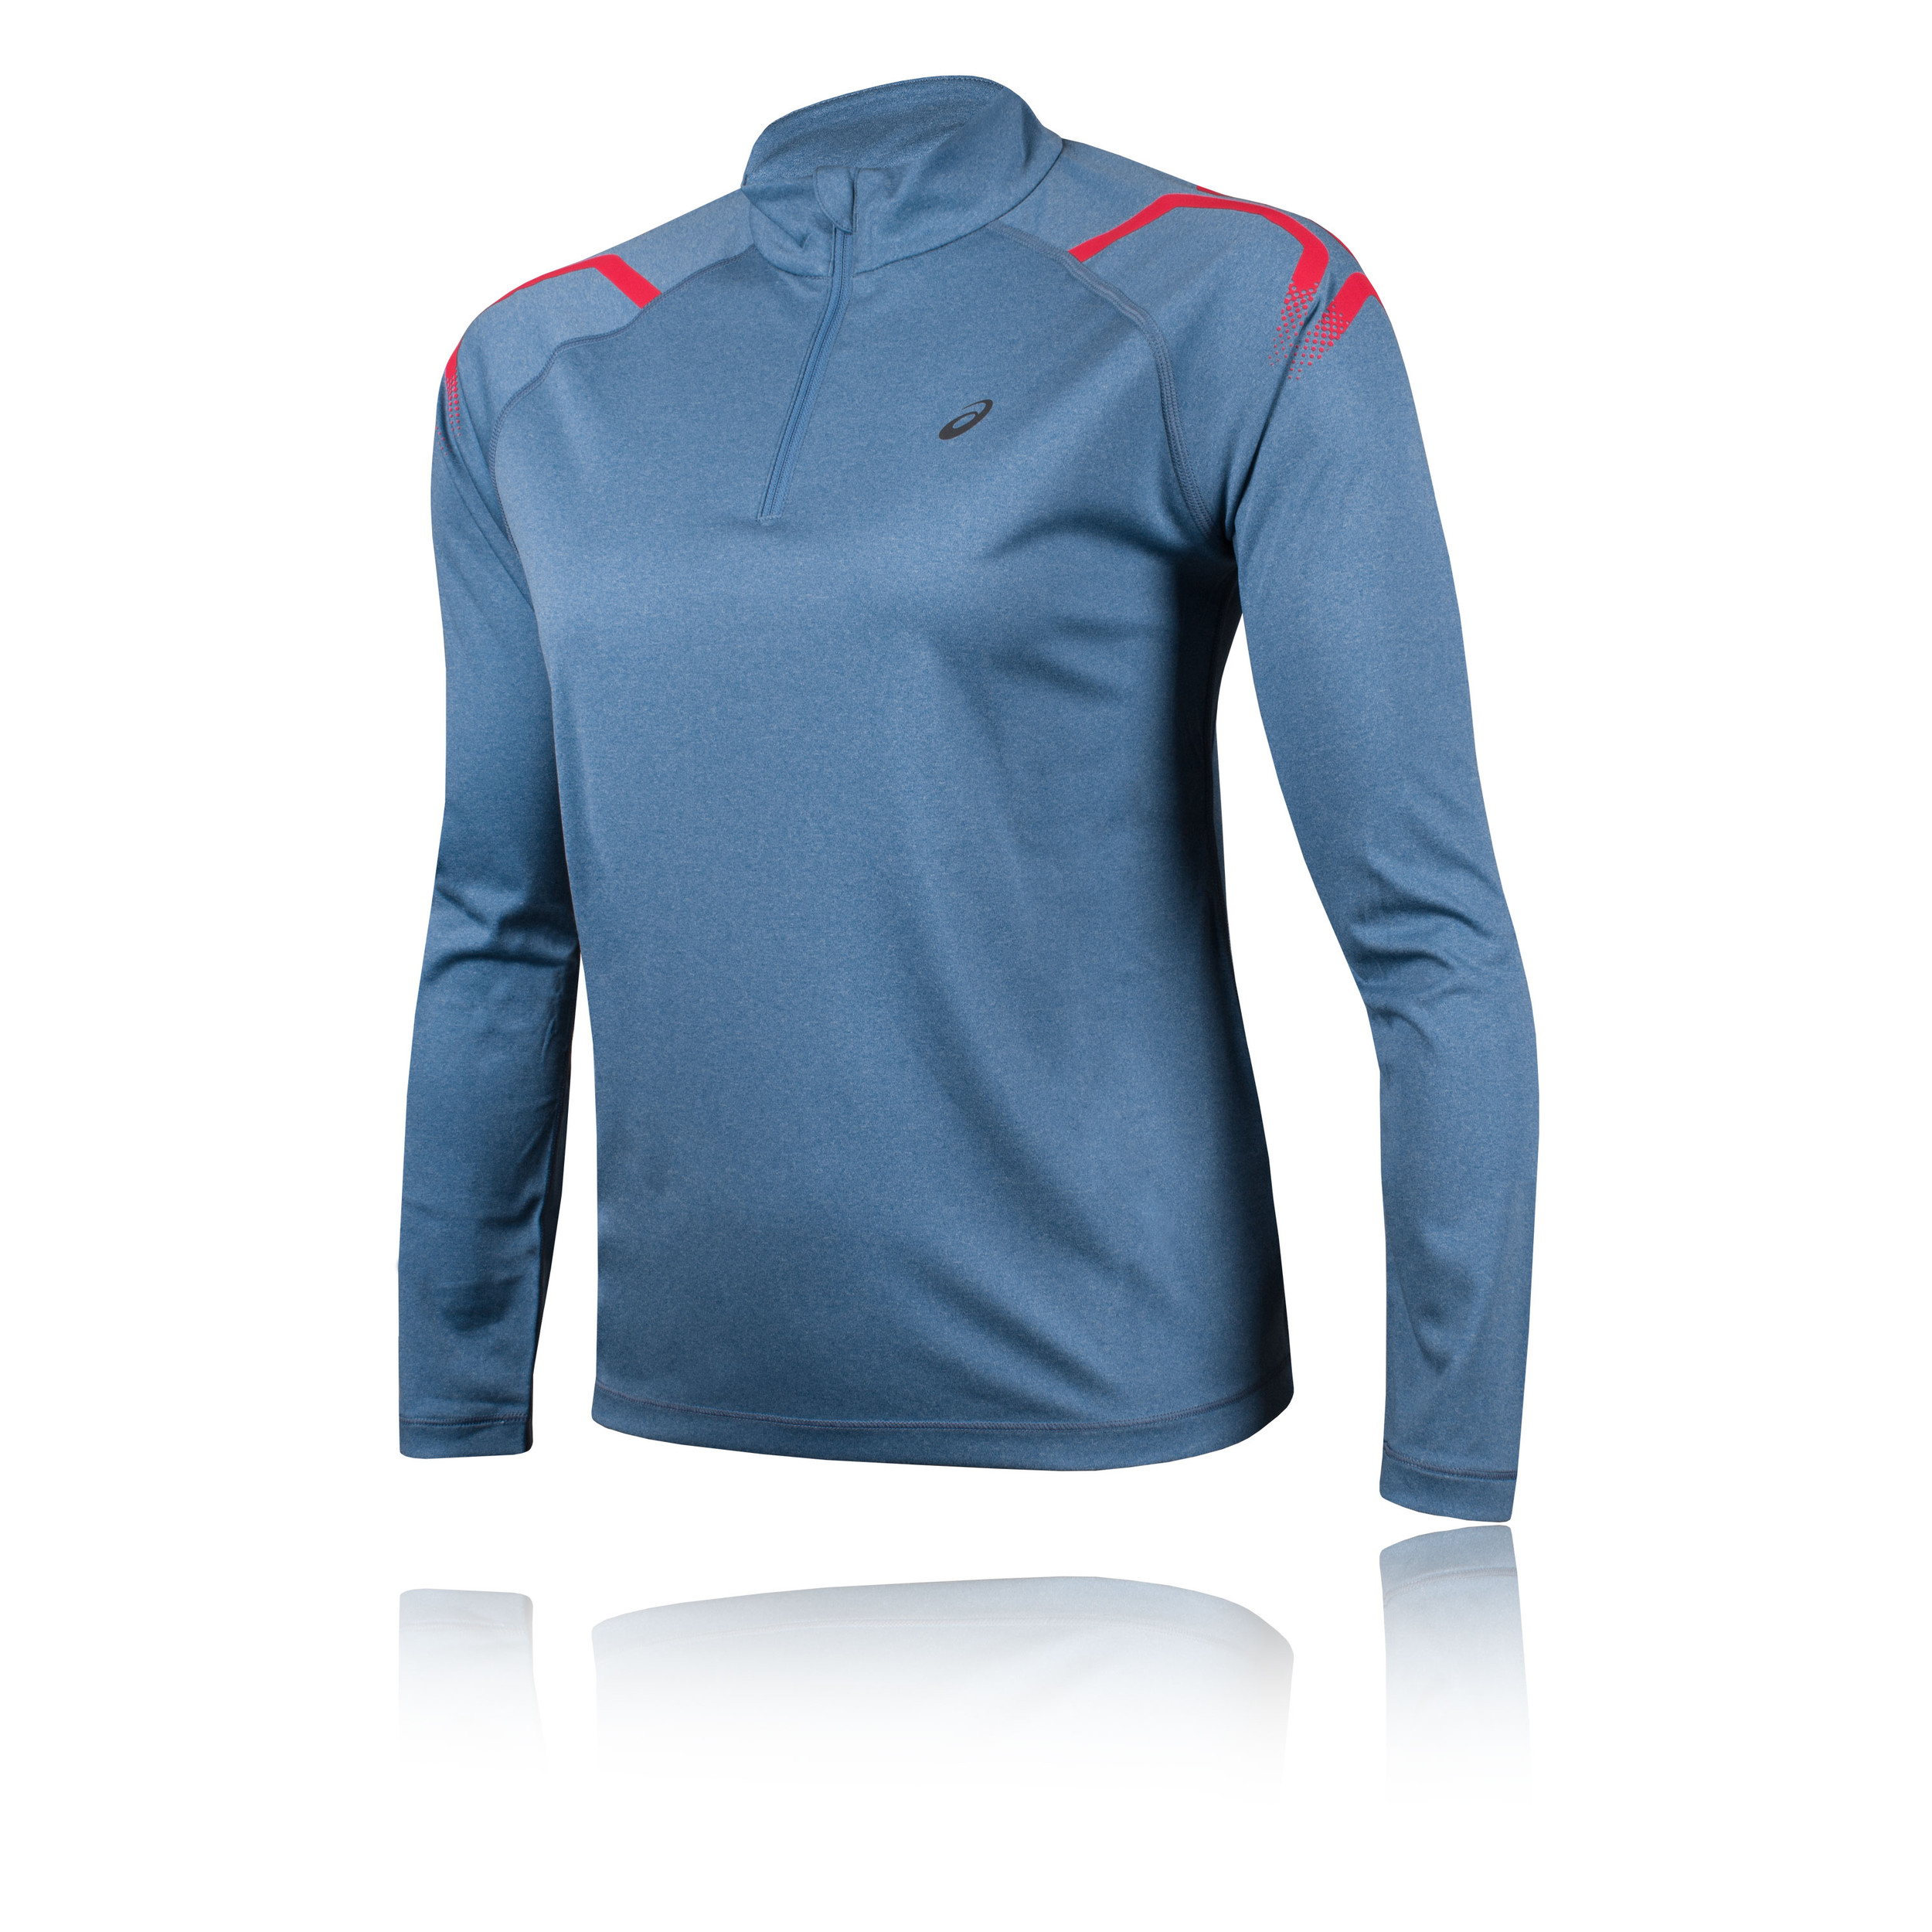 925e7c96ae Details about Asics Womens Icon Long Sleeved 1/2 Zip Top Blue Sports  Running Breathable